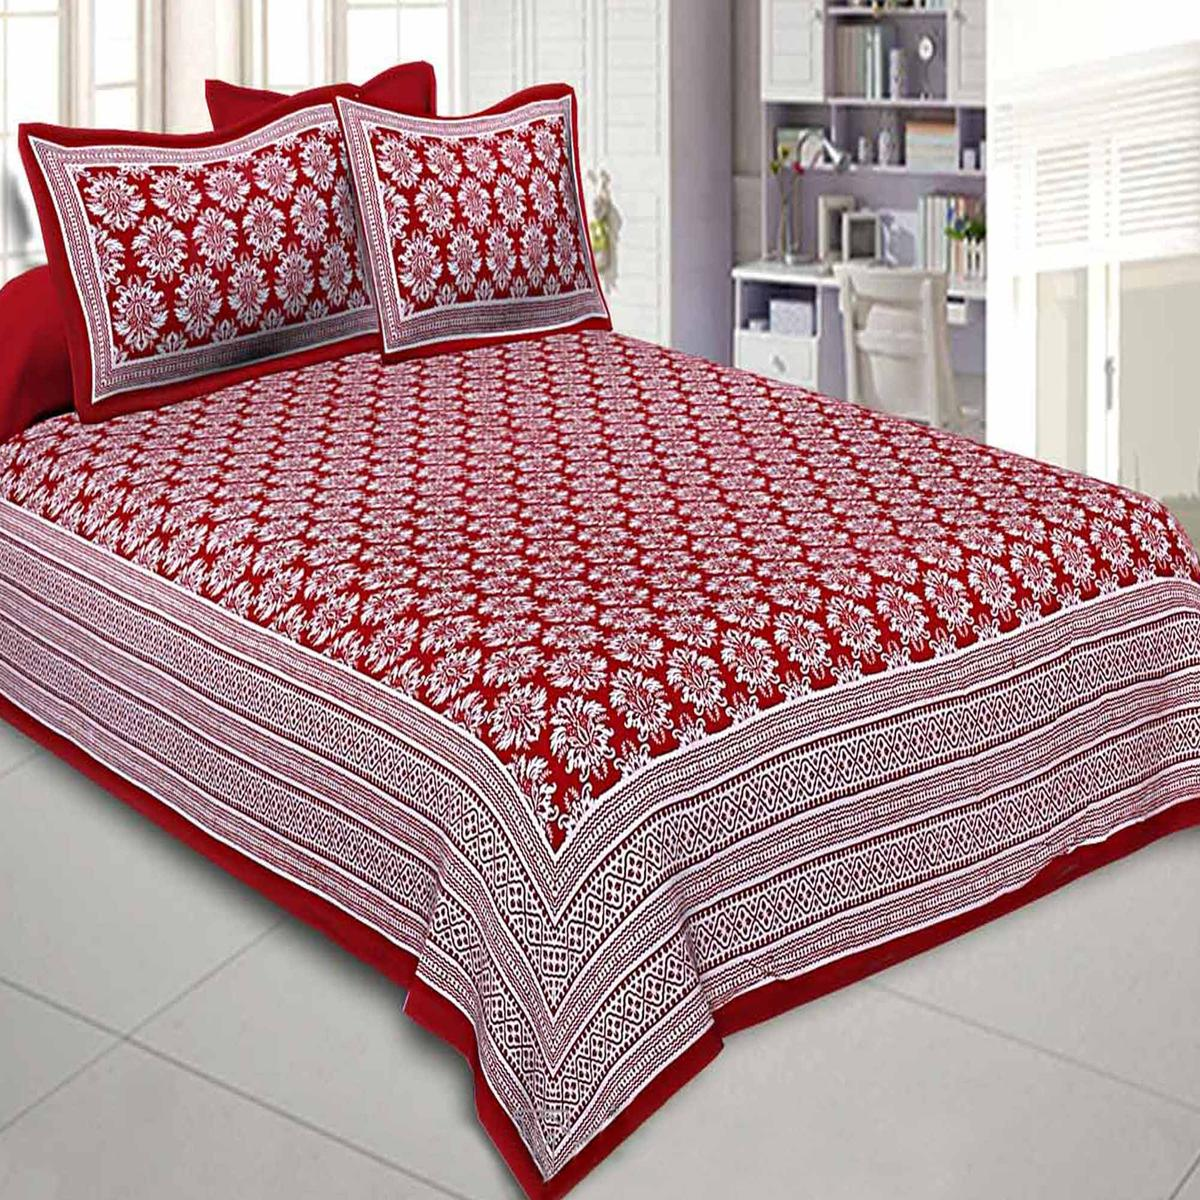 Lovely Red Colored Floral Printed Cotton Double Bedsheet With Pillow Cover